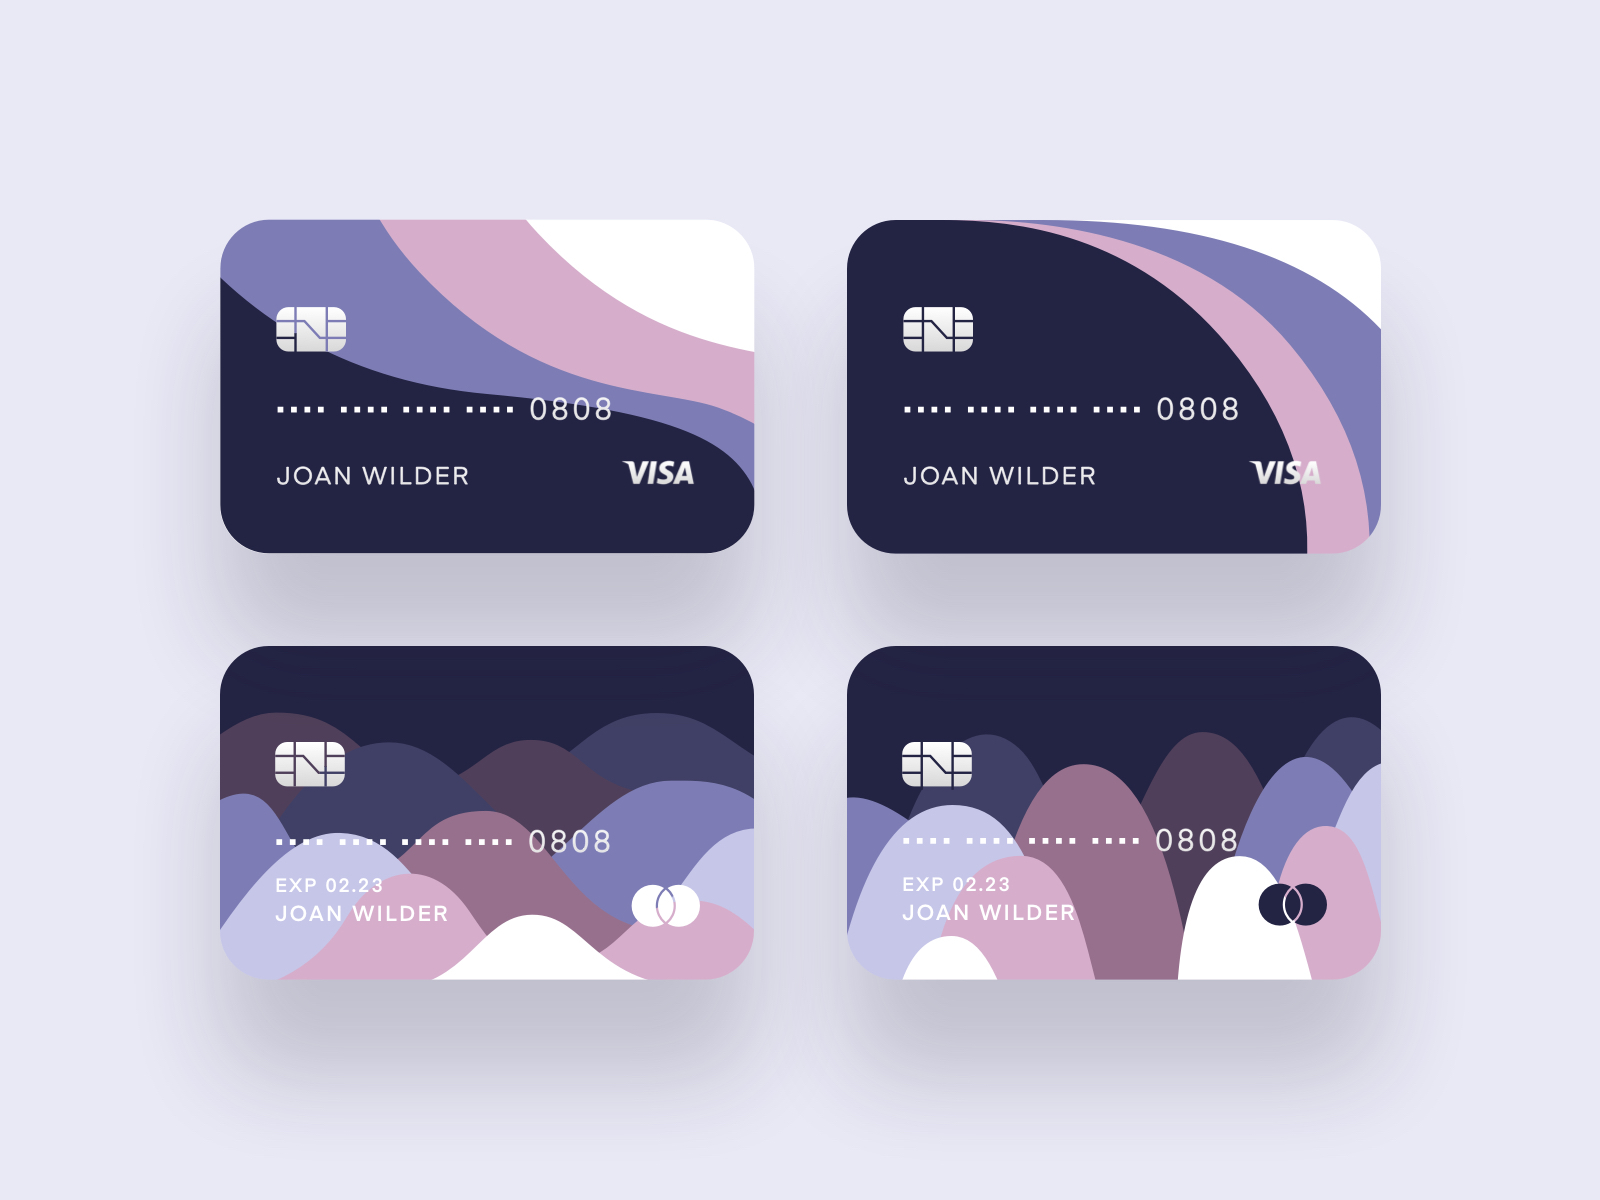 Free Credit Card Templates cover image